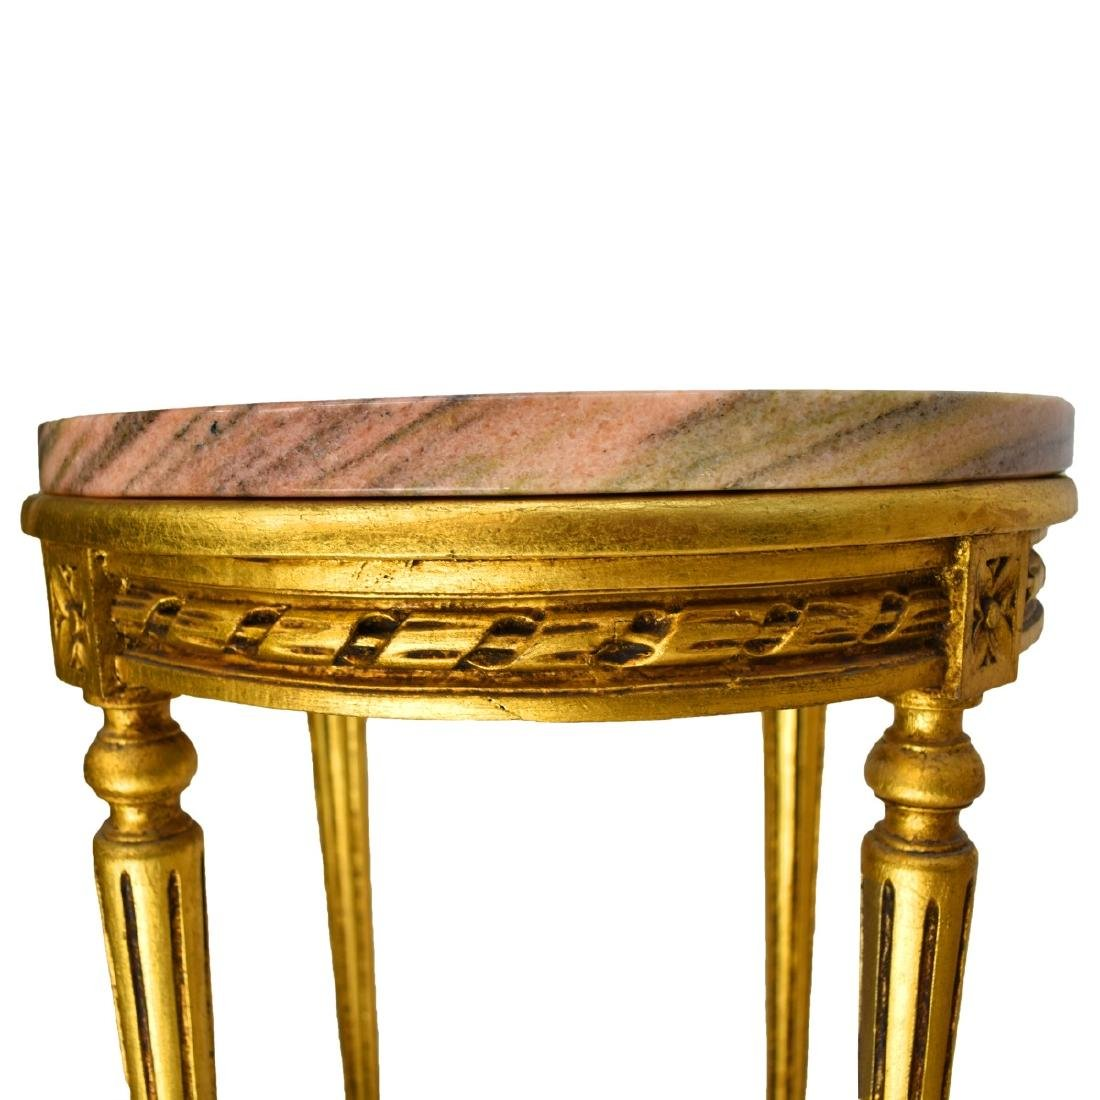 Italian Louis XVI Style Giltwood Marble Top Tables - 3